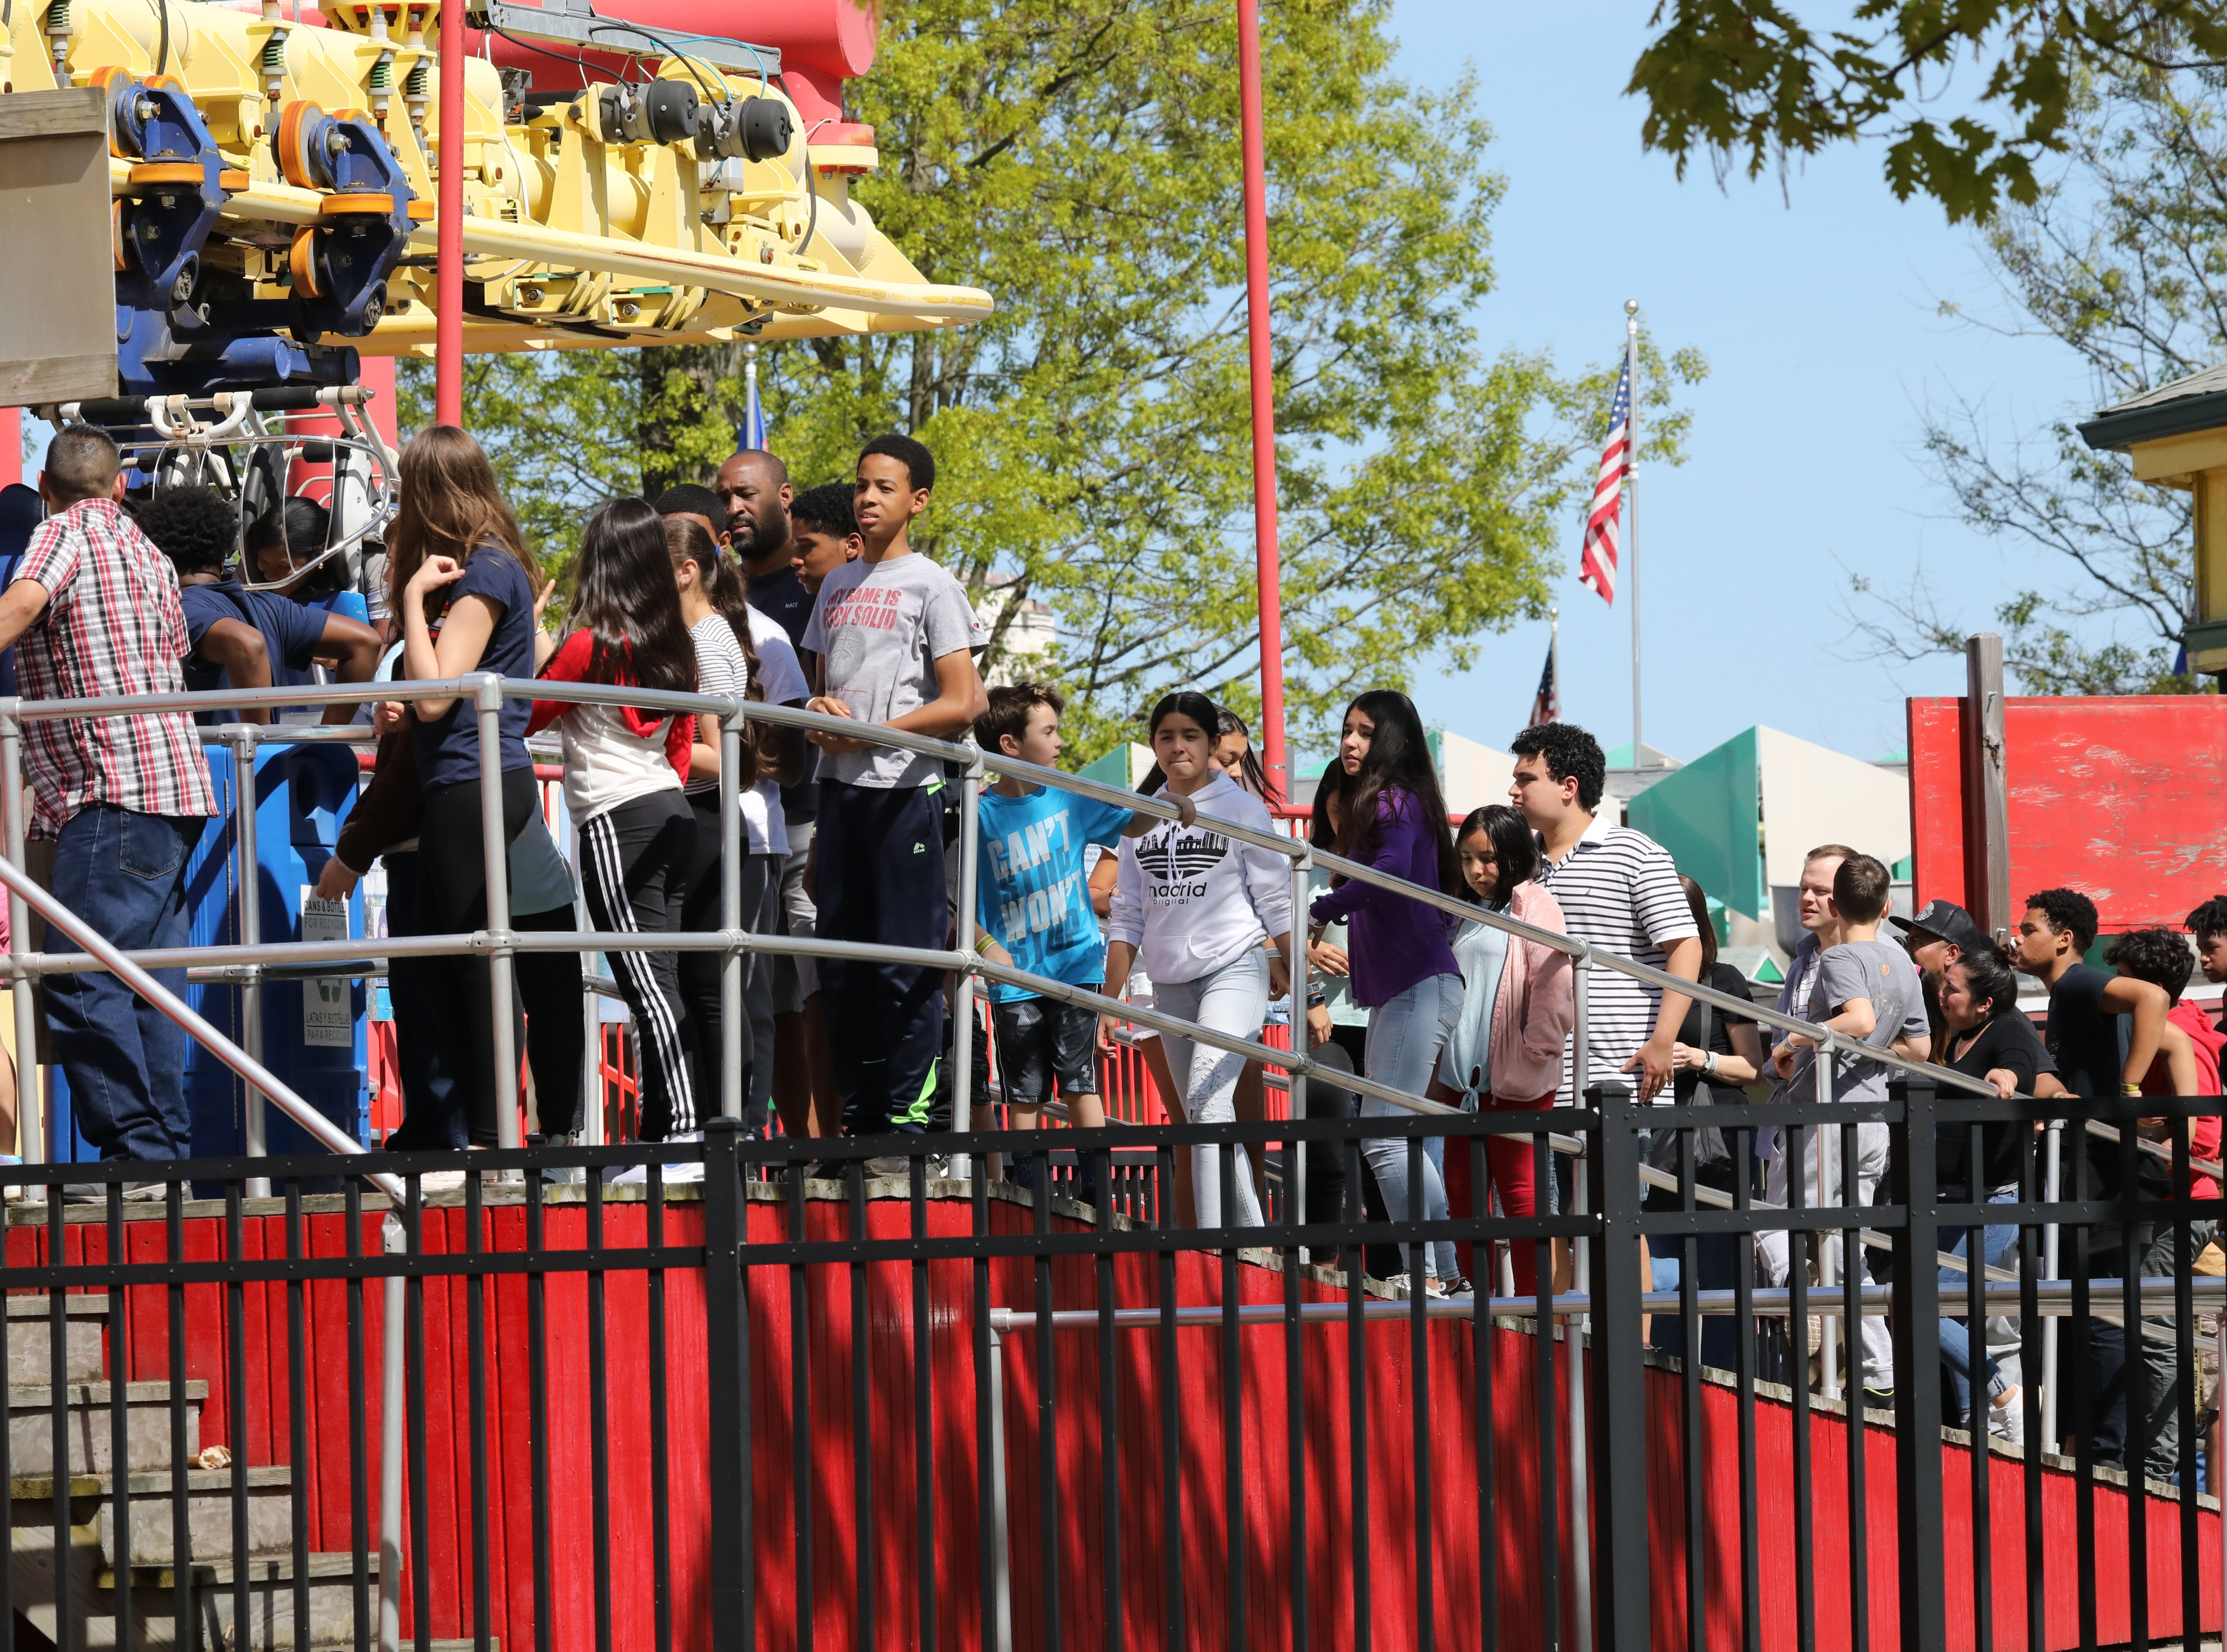 The beautiful weather brought out many people as riders line up to board the Superflight during opening day at Playland in Rye, May 11, 2019.